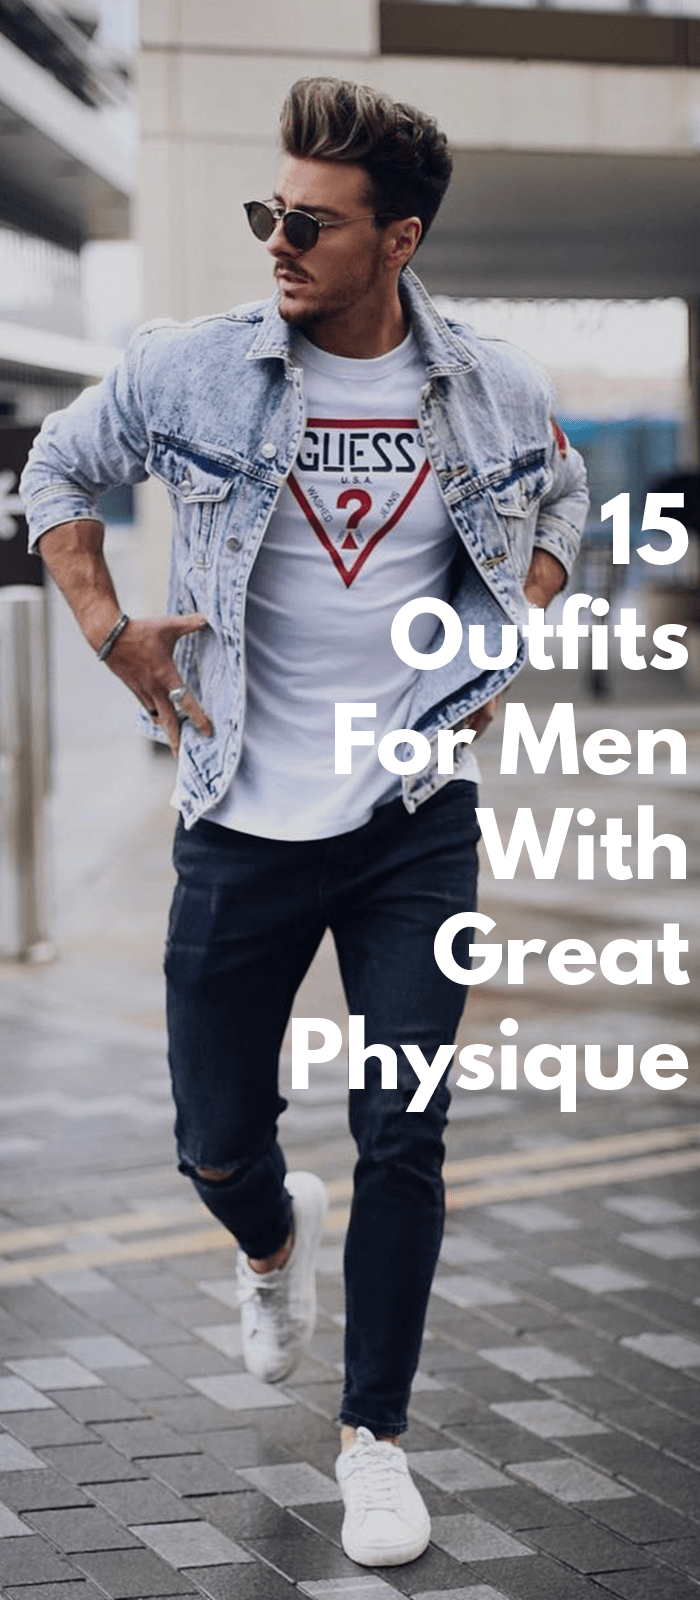 15 Outfits For Men With Great Physique.